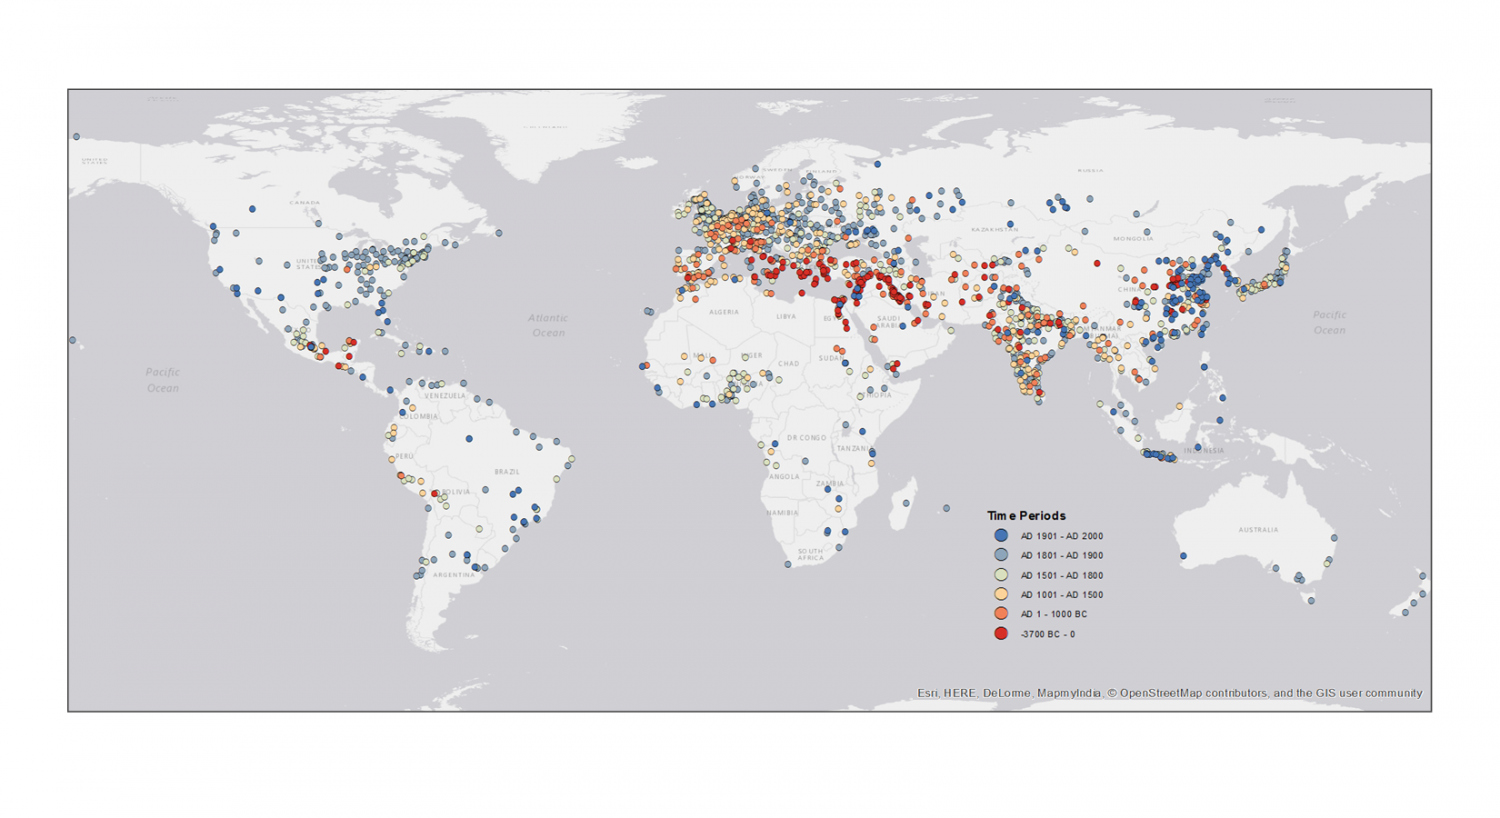 World Map 2000 Bc.Researchers Map 6 000 Years Of Urban Settlements